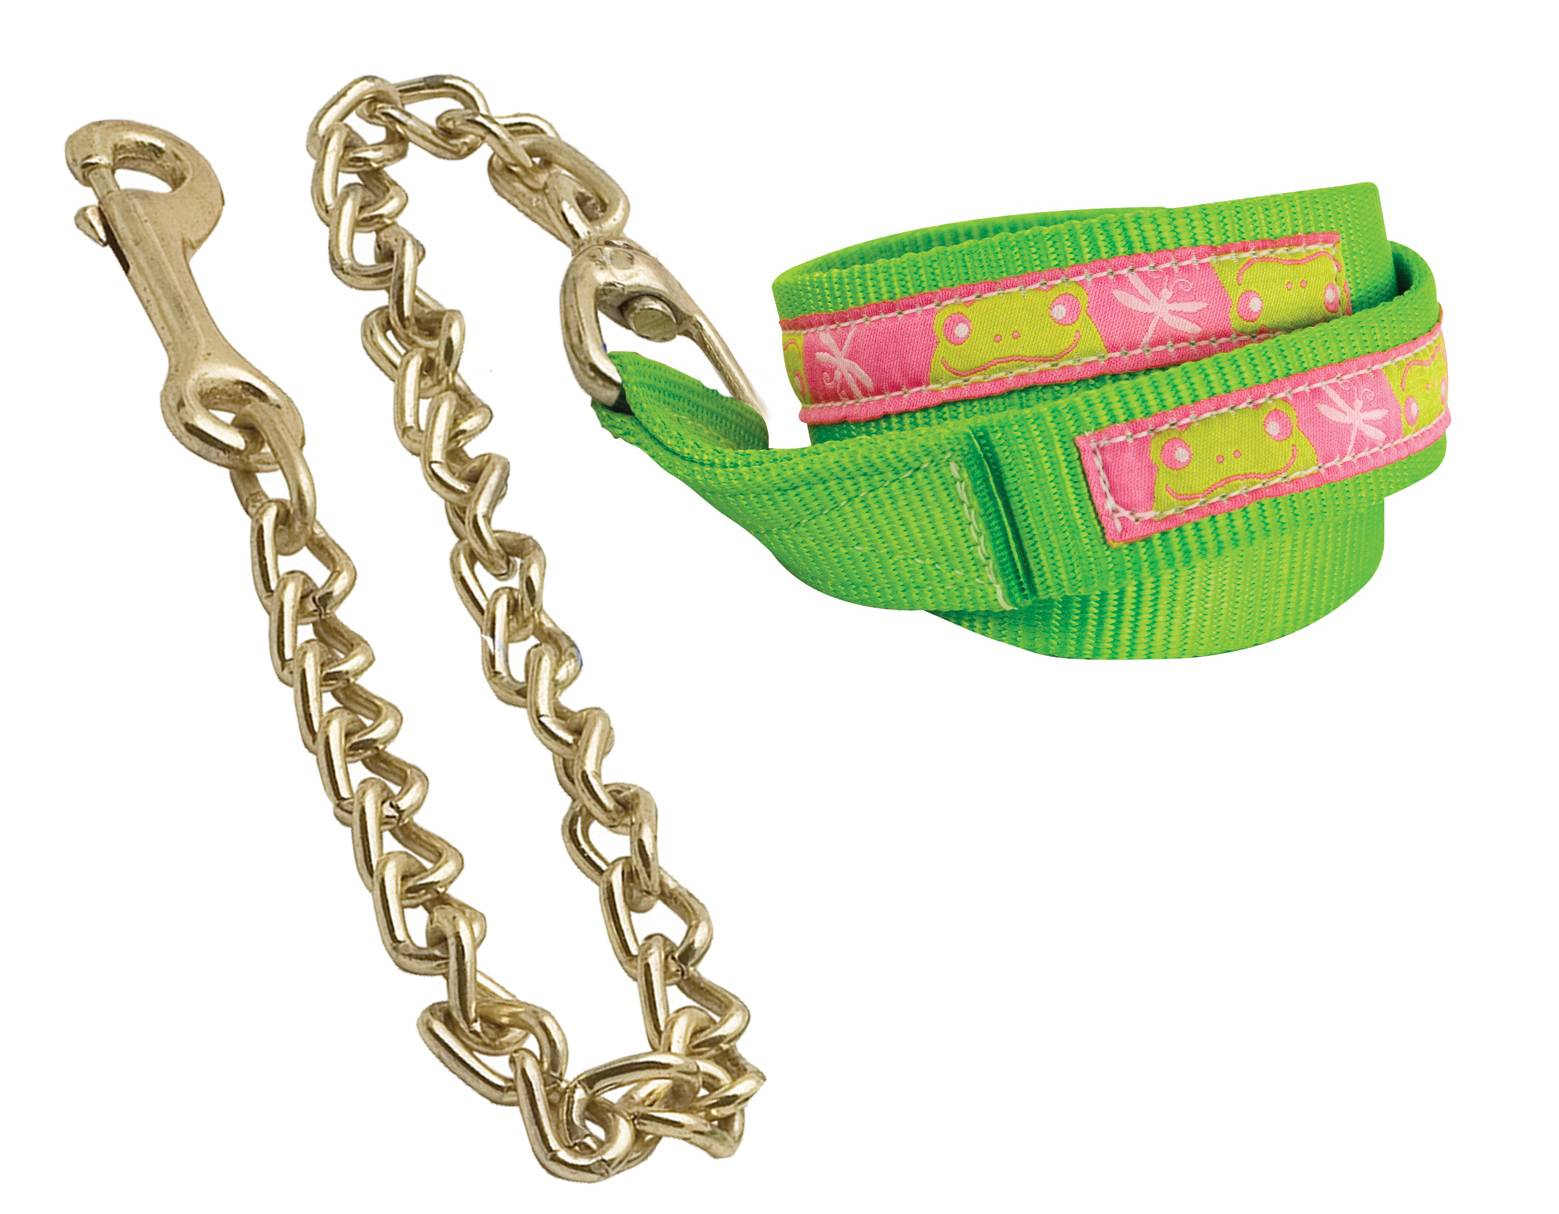 Perri's Nylon Ribbon Lead with Chain